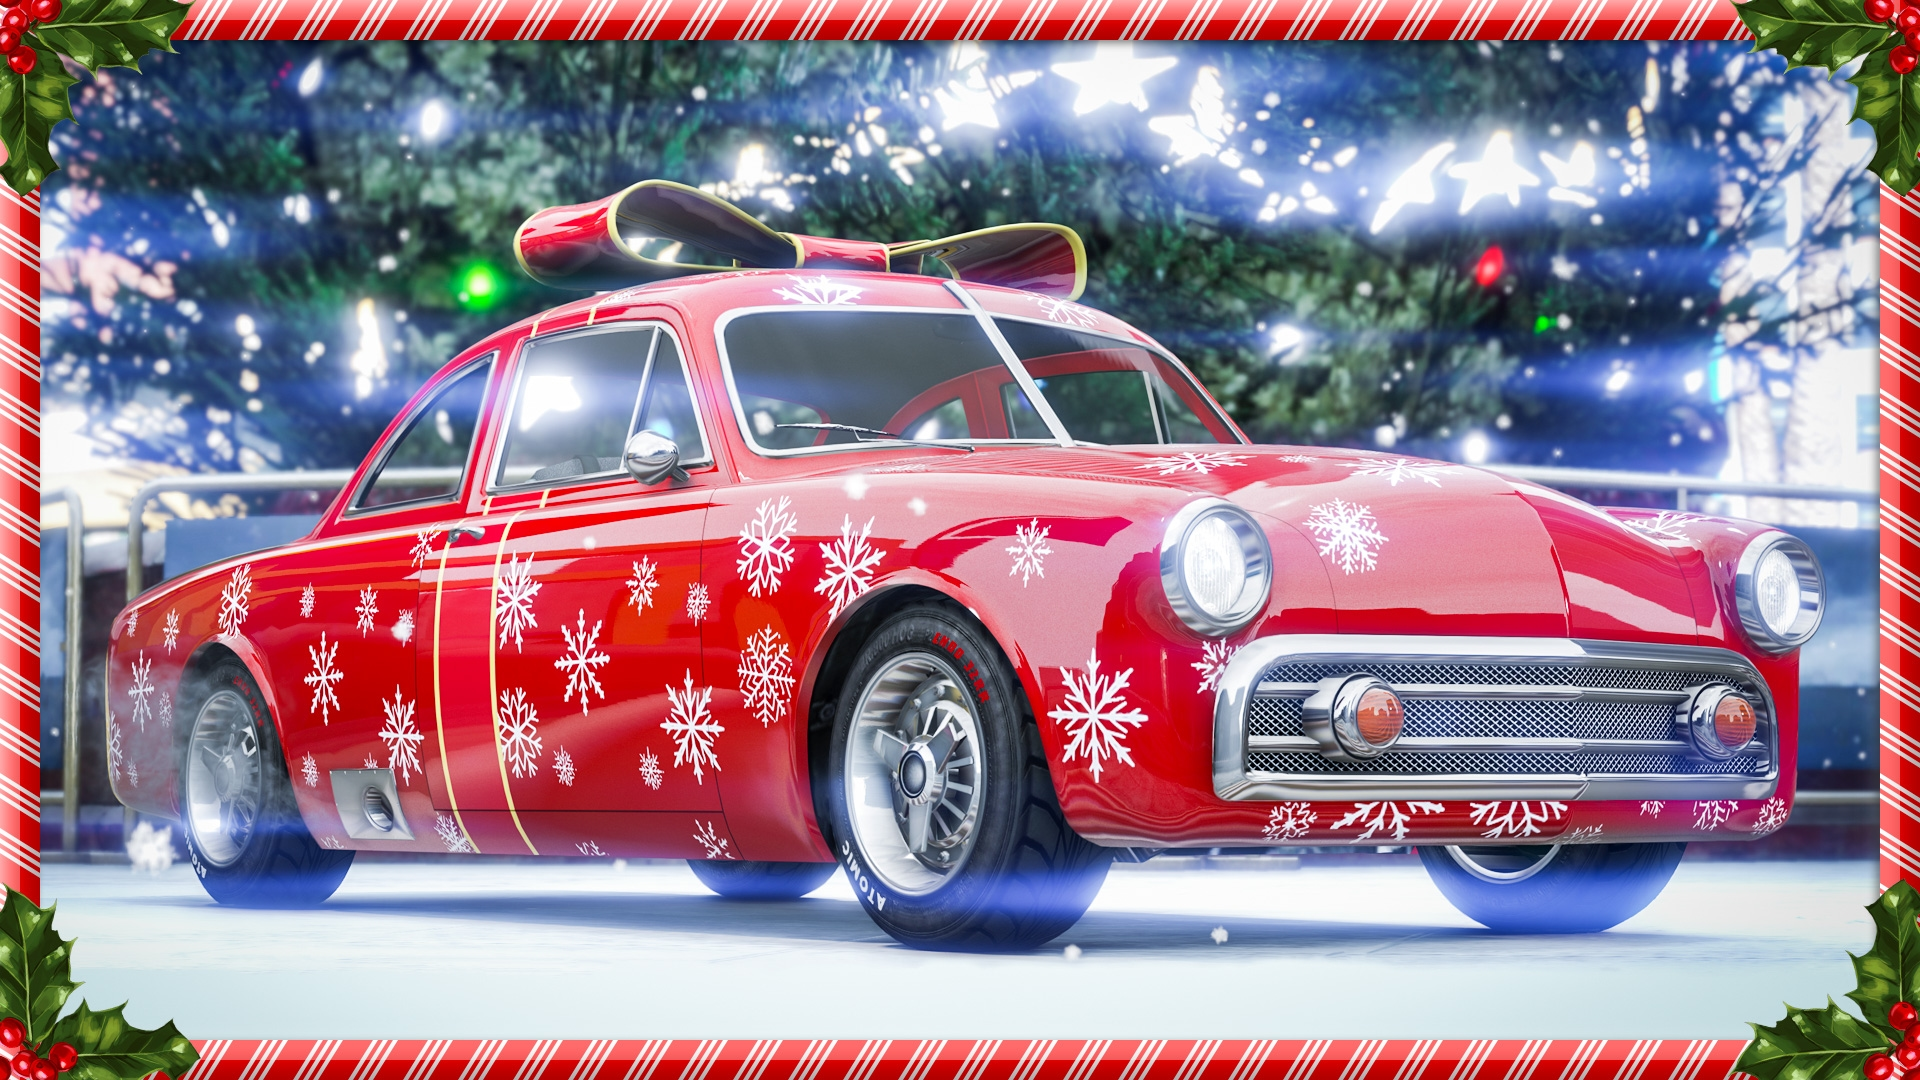 Festive Surprise 2018 in GTA Online